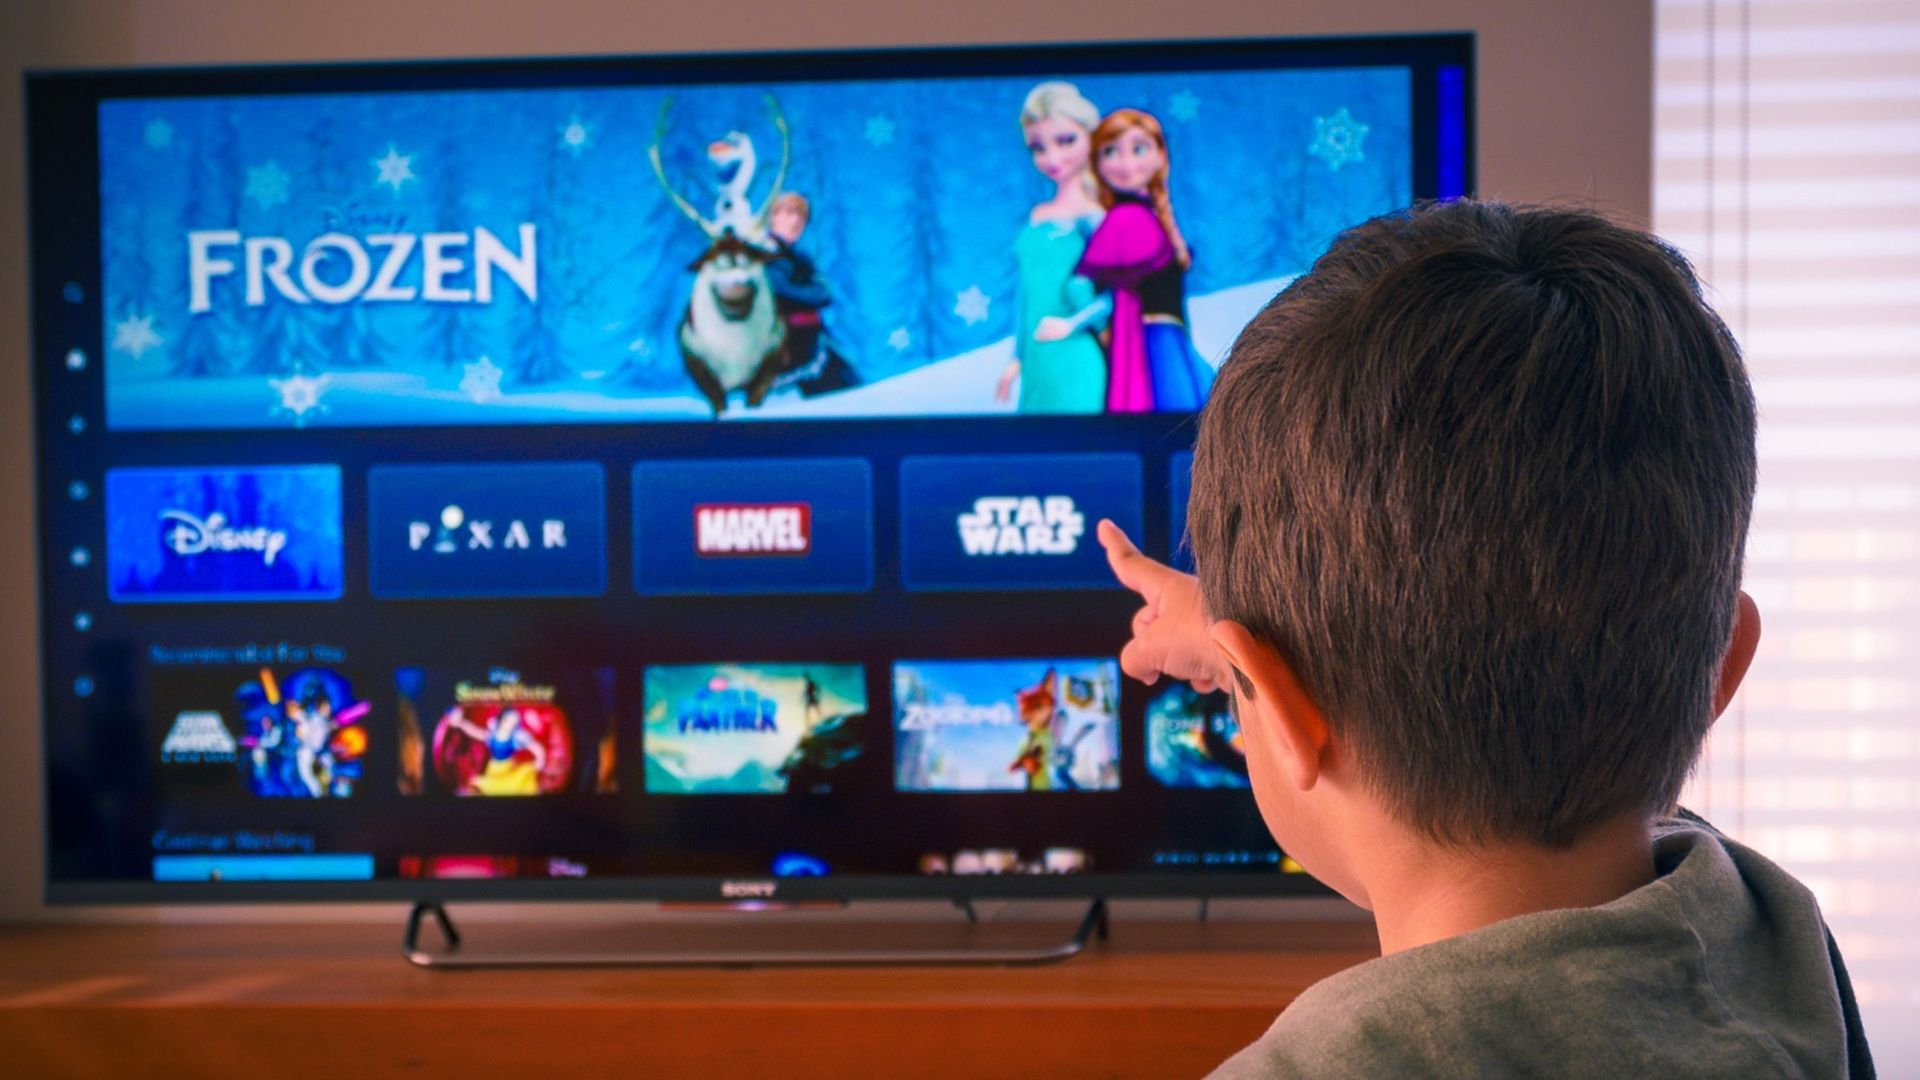 How To Get Disney Channel On Samsung Smart Tv